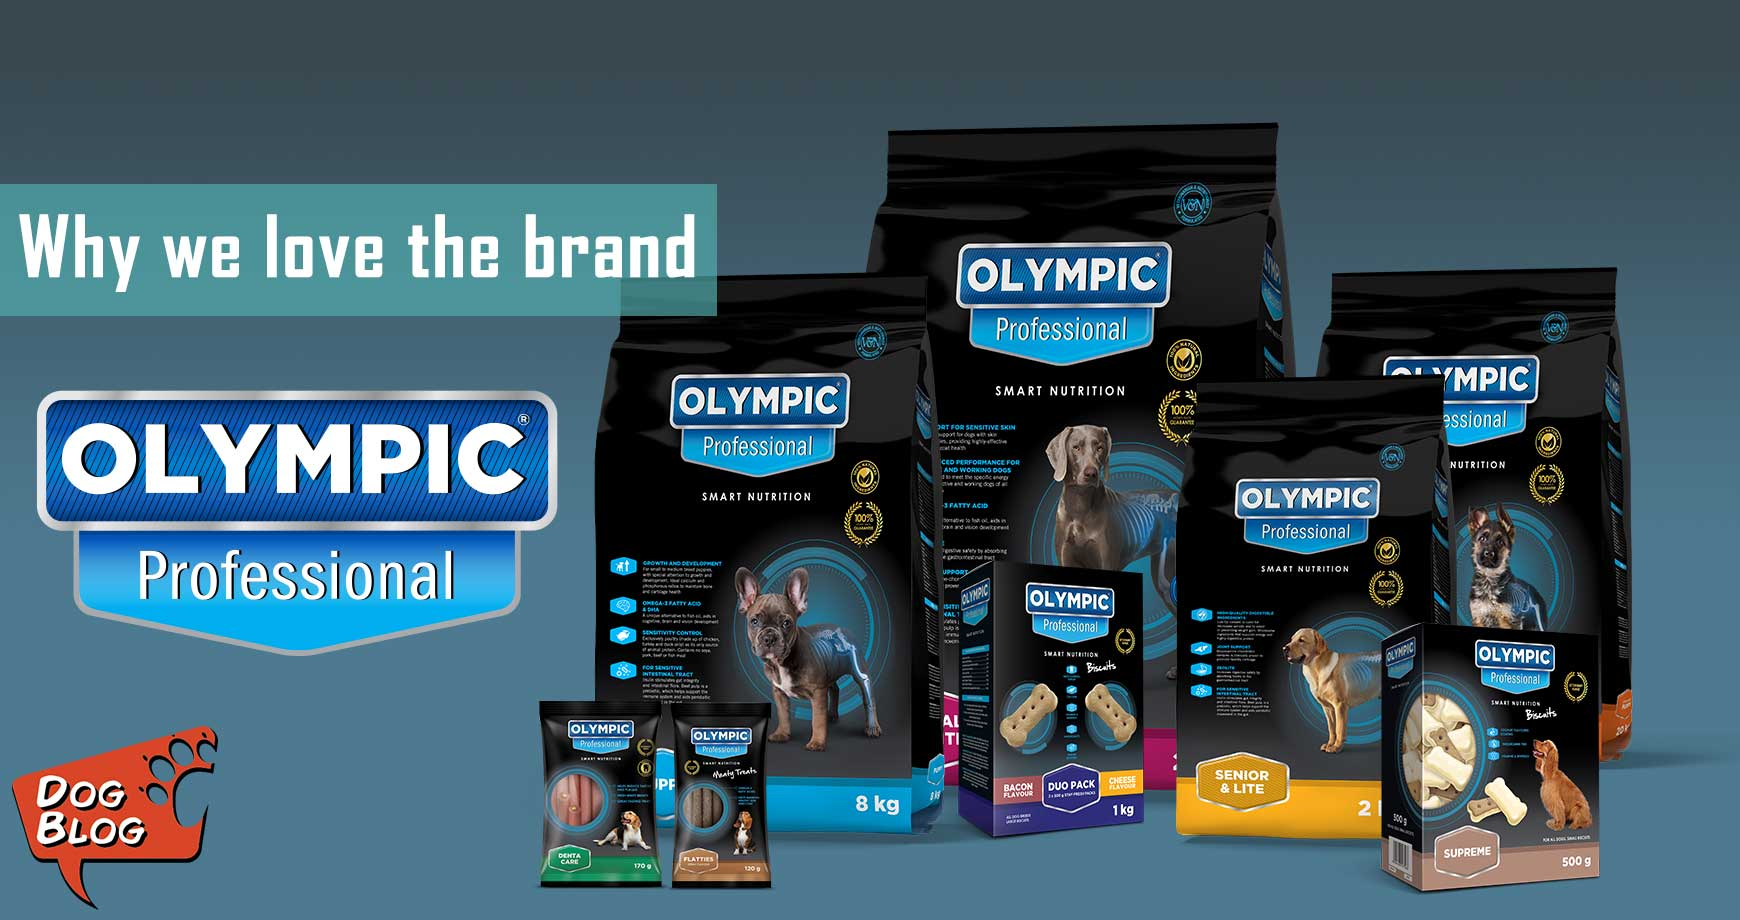 why Pet Hero loves Olympic Professional Dog food and treats